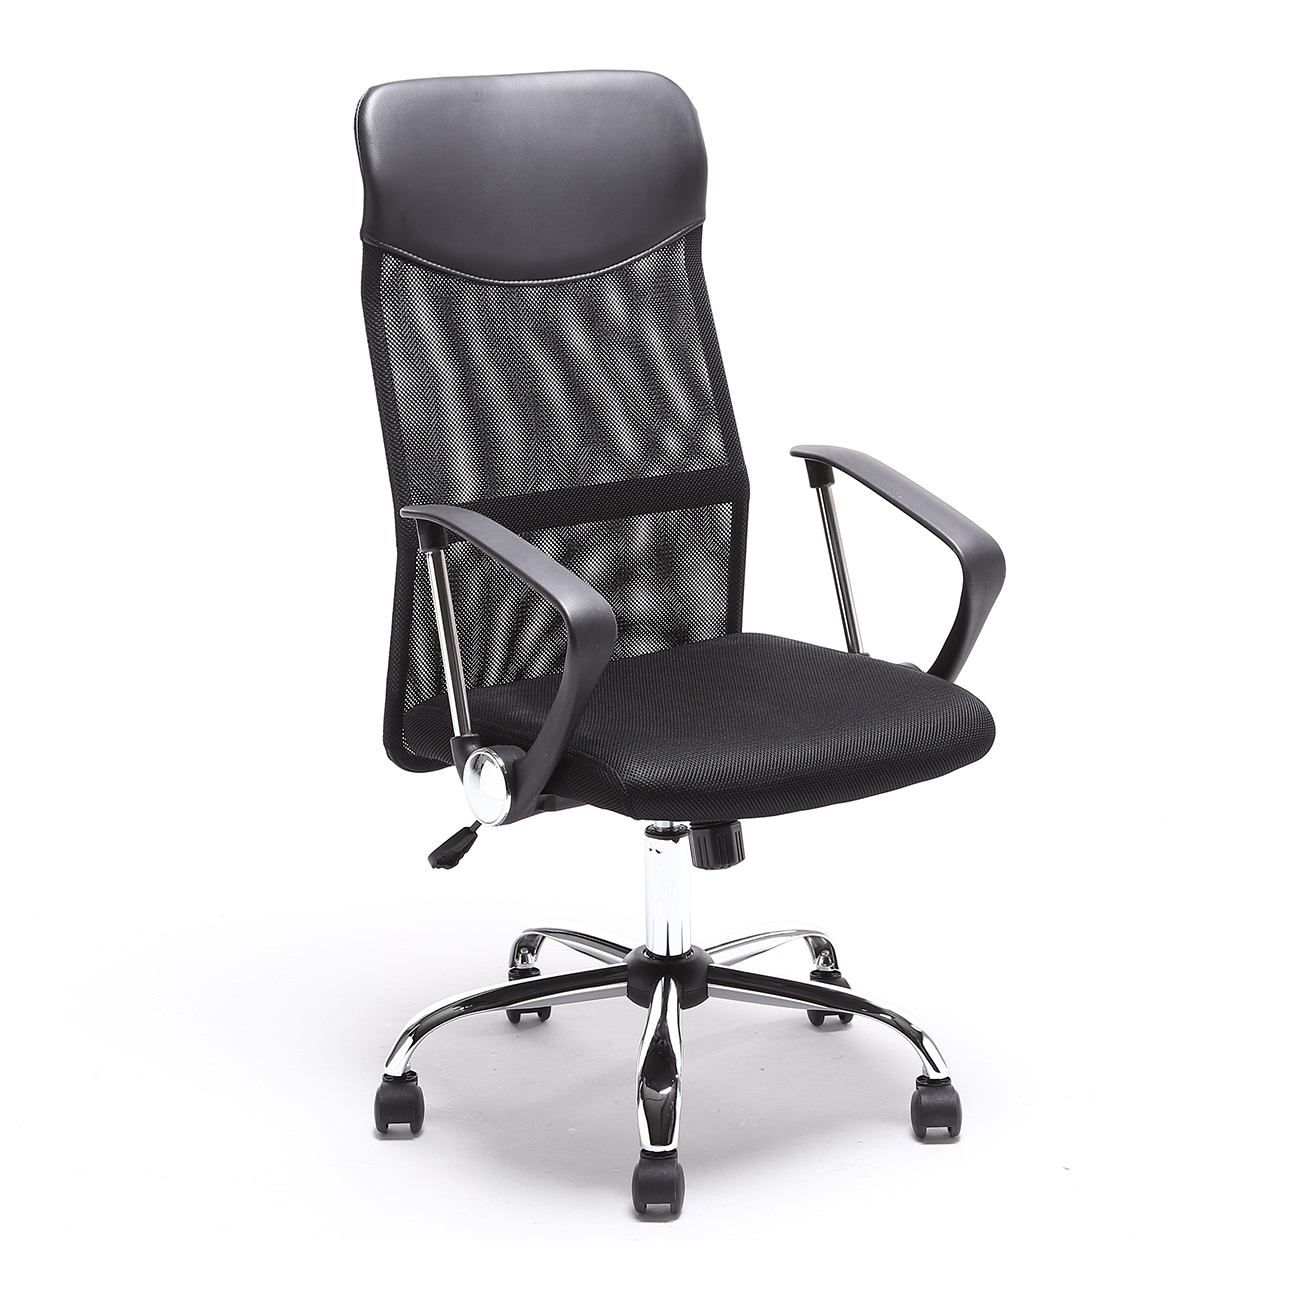 high quality office chairs ergonomic desk chair upright back pu leather executive